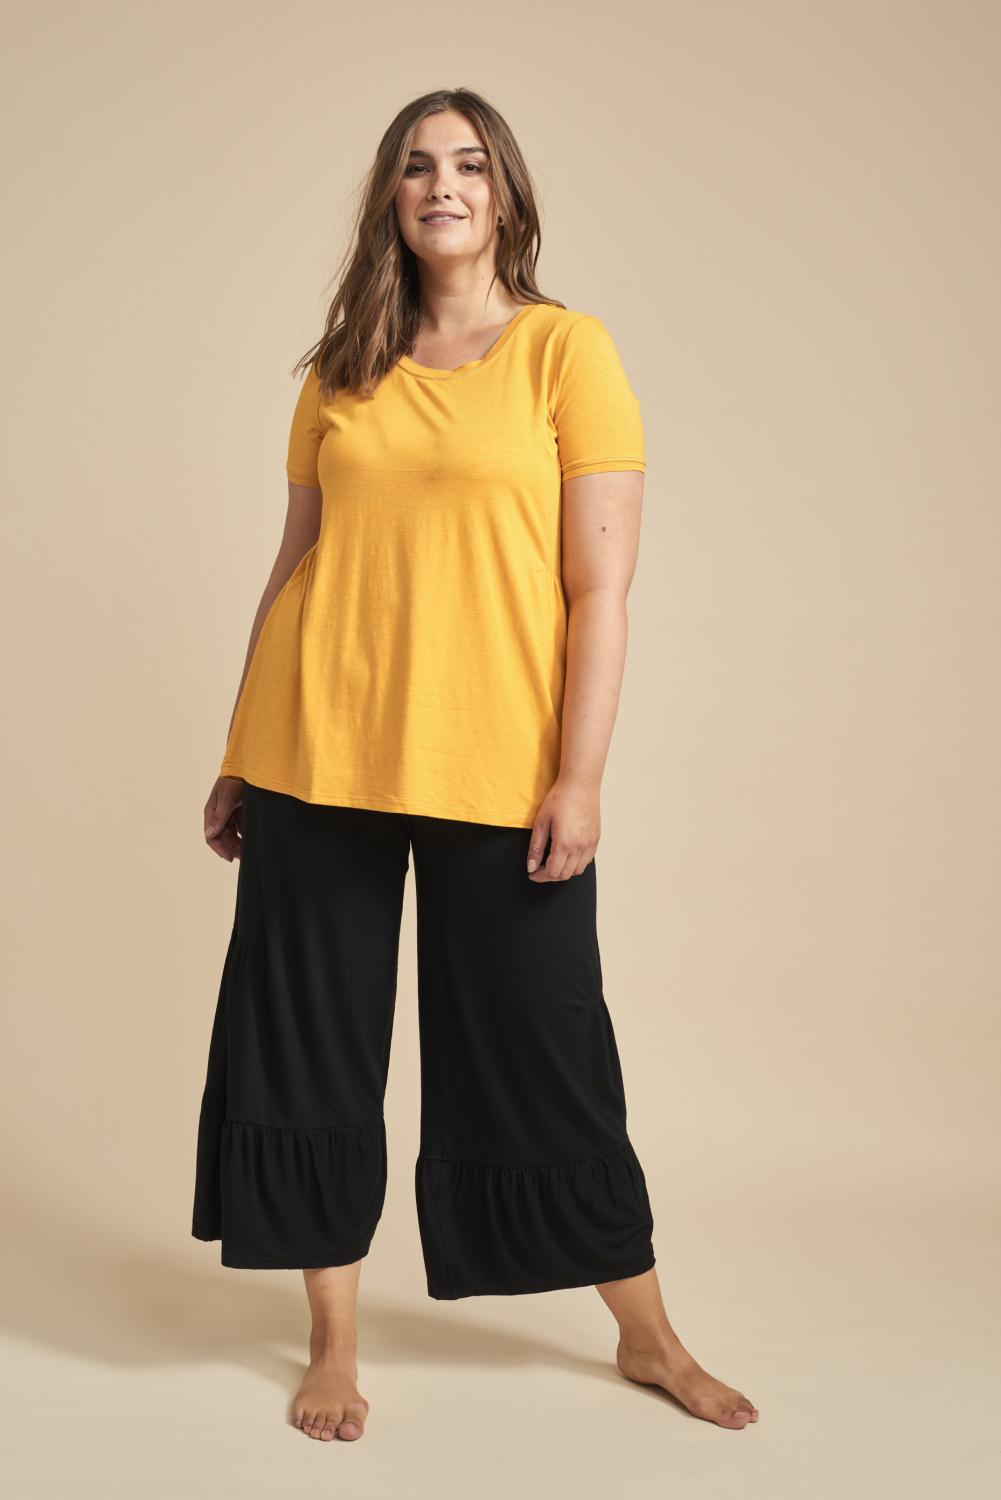 gallery-4605-for-AD4013